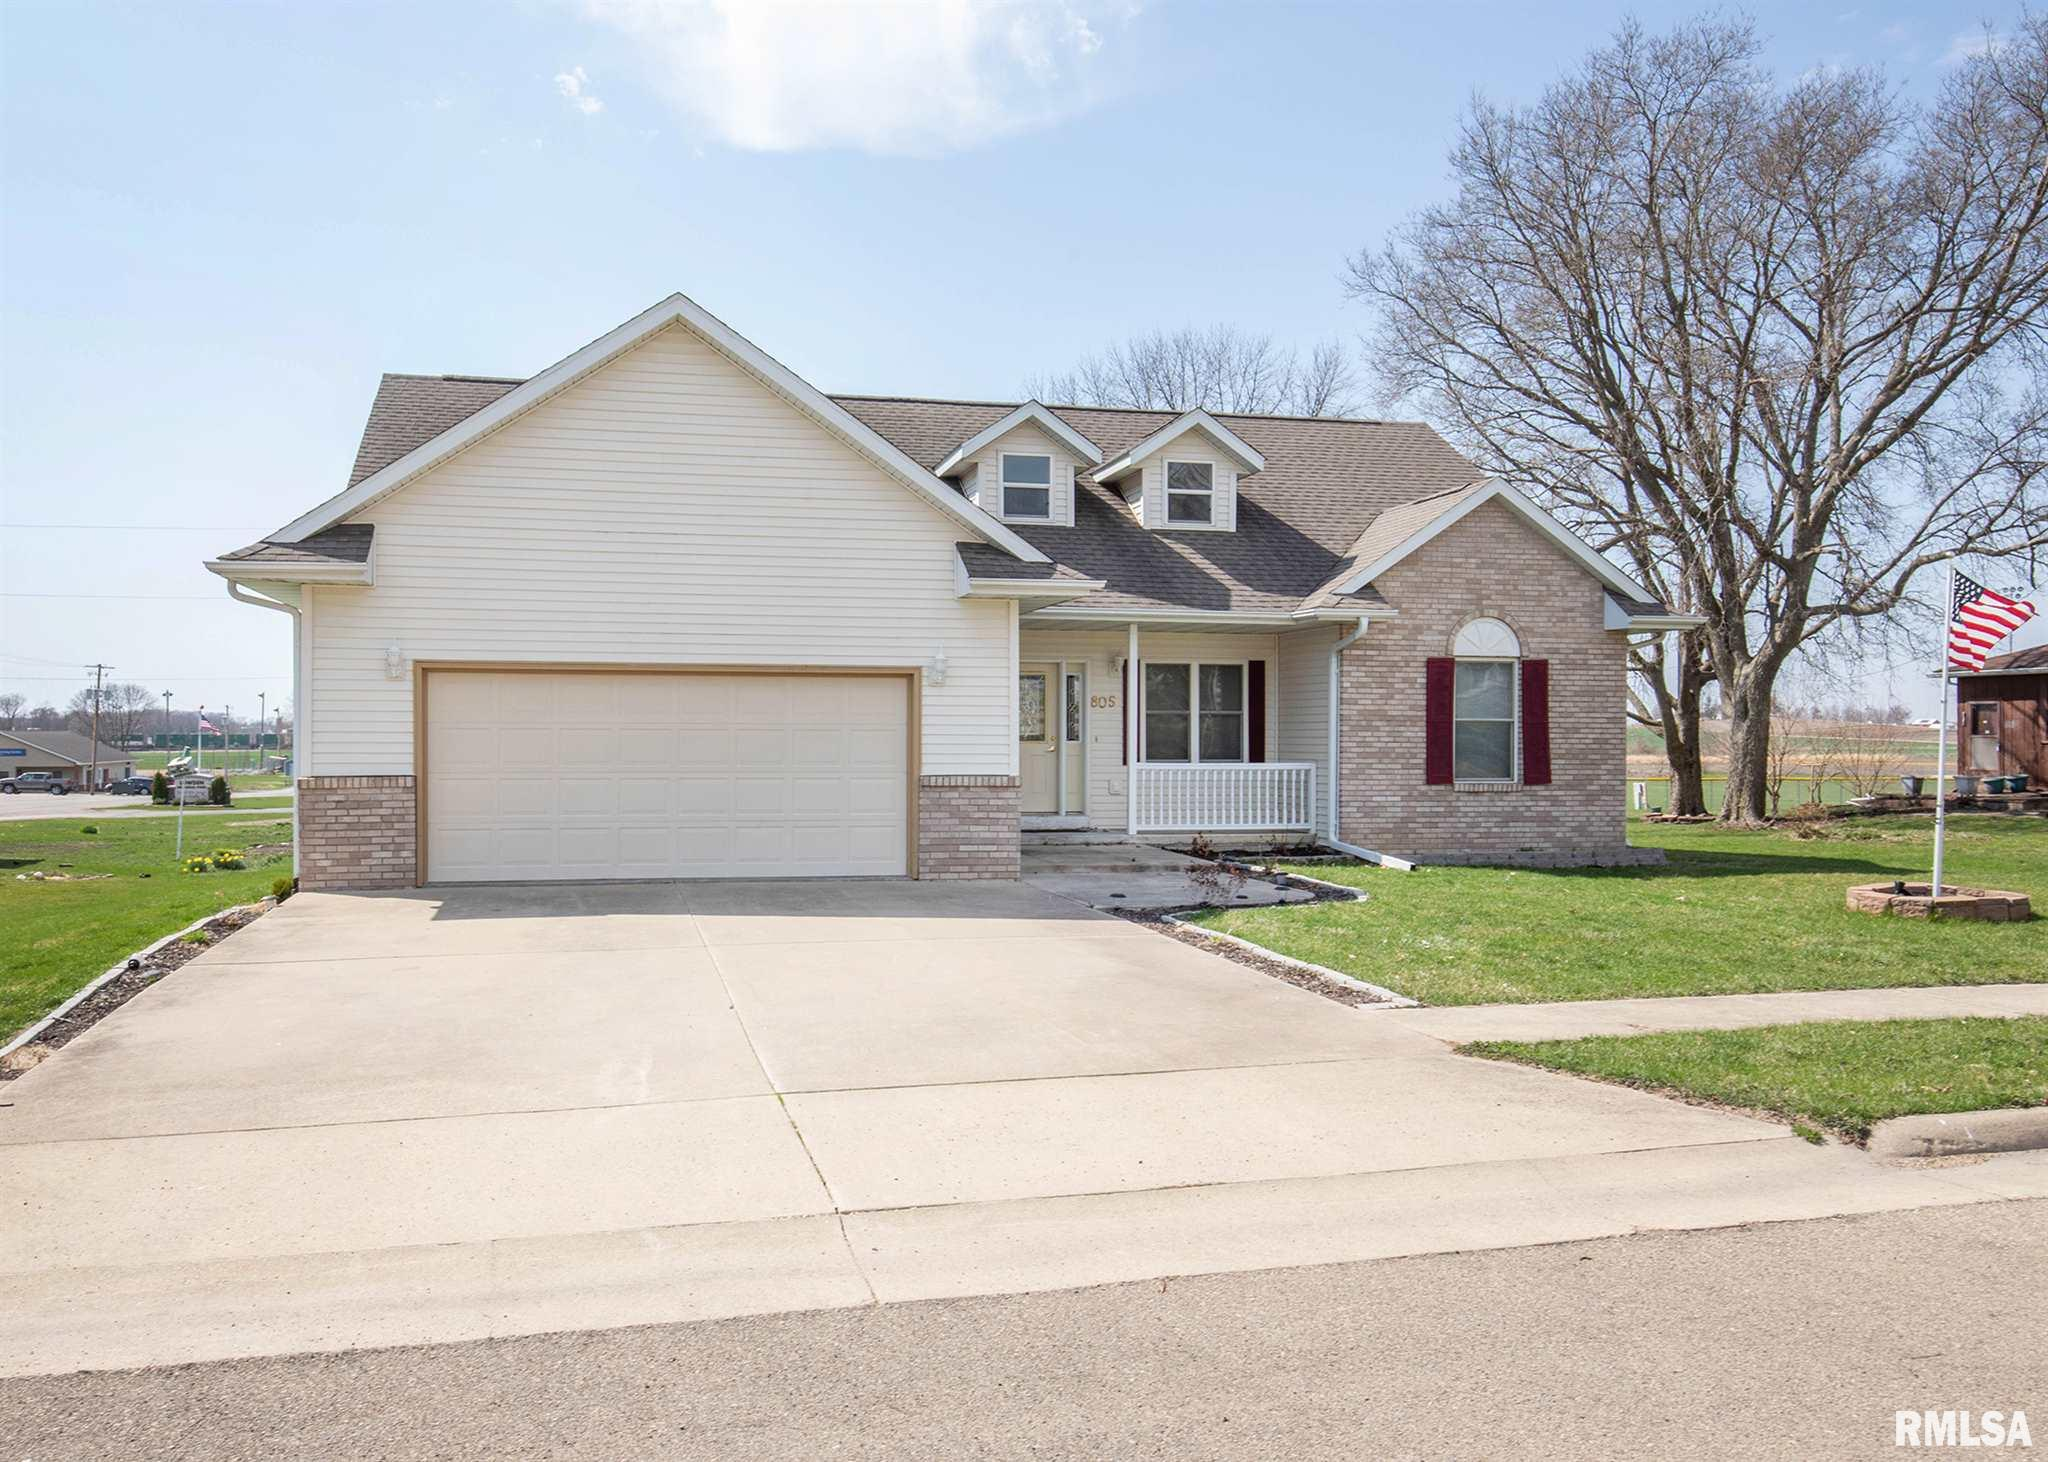 805 MCKINLEY Property Photo - Lowden, IA real estate listing